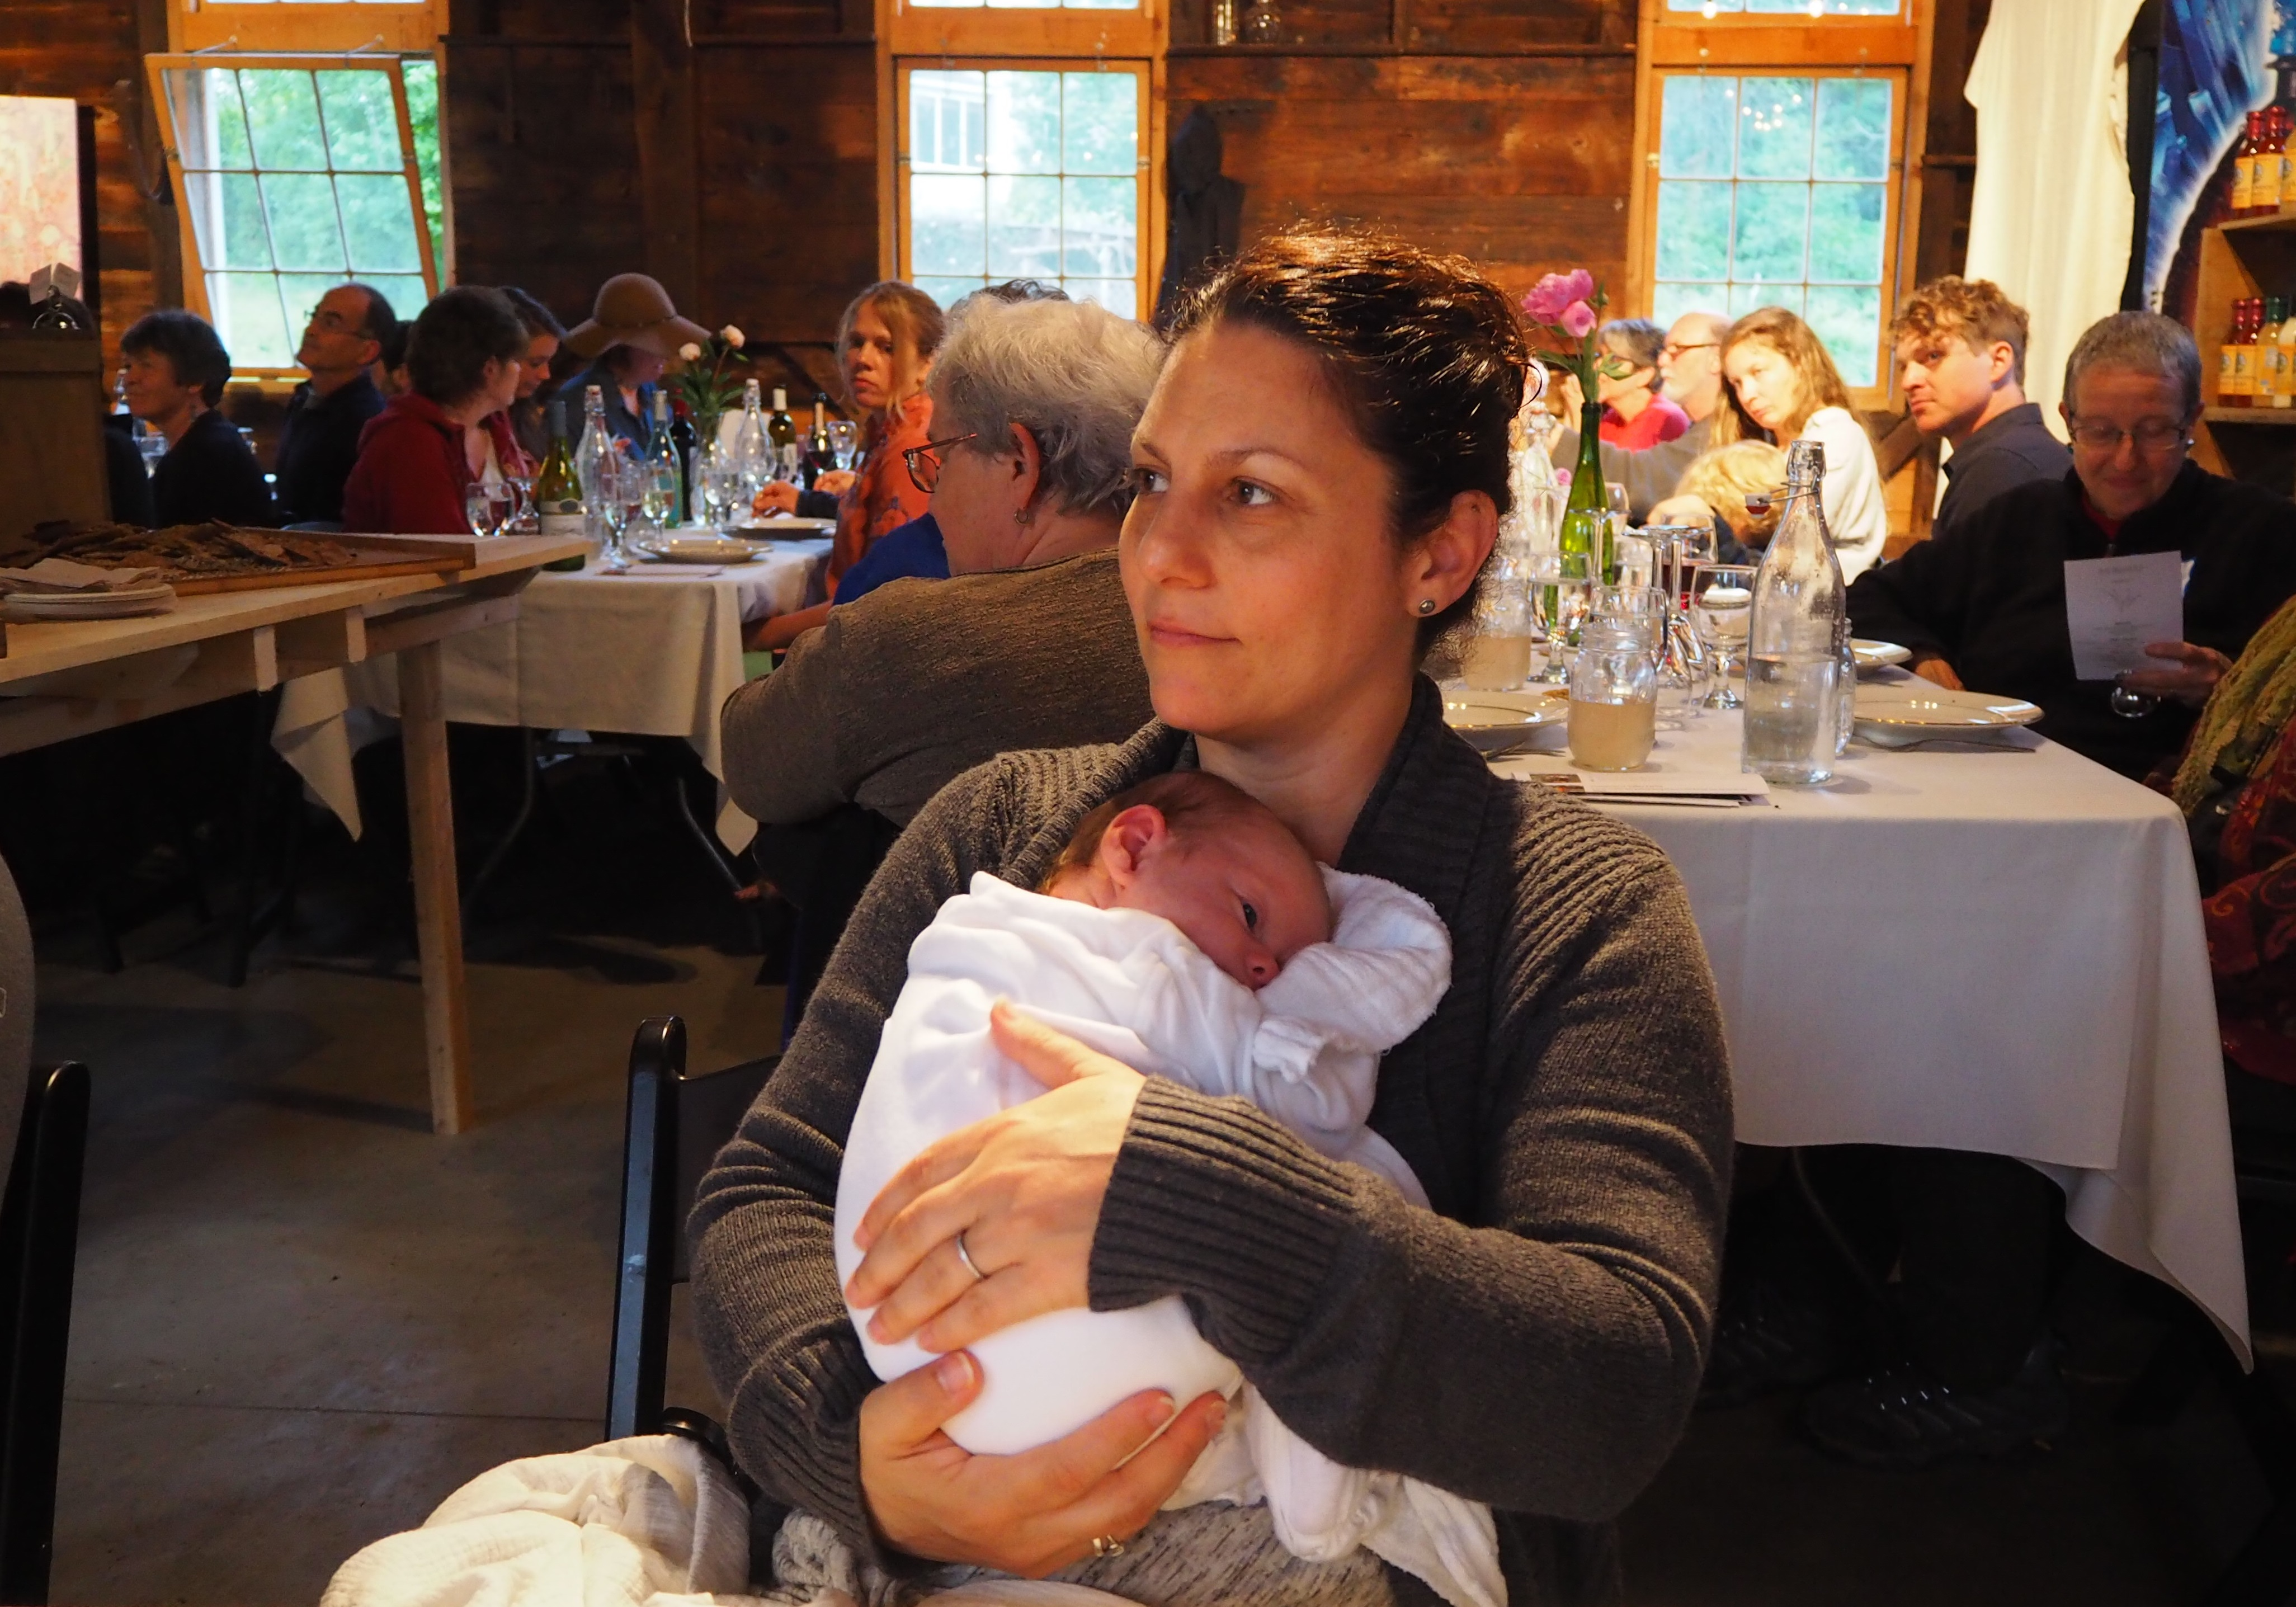 Tiffany Seated Holding Her Baby Swaddled In White, With People In Background Seated At Dinner Tables